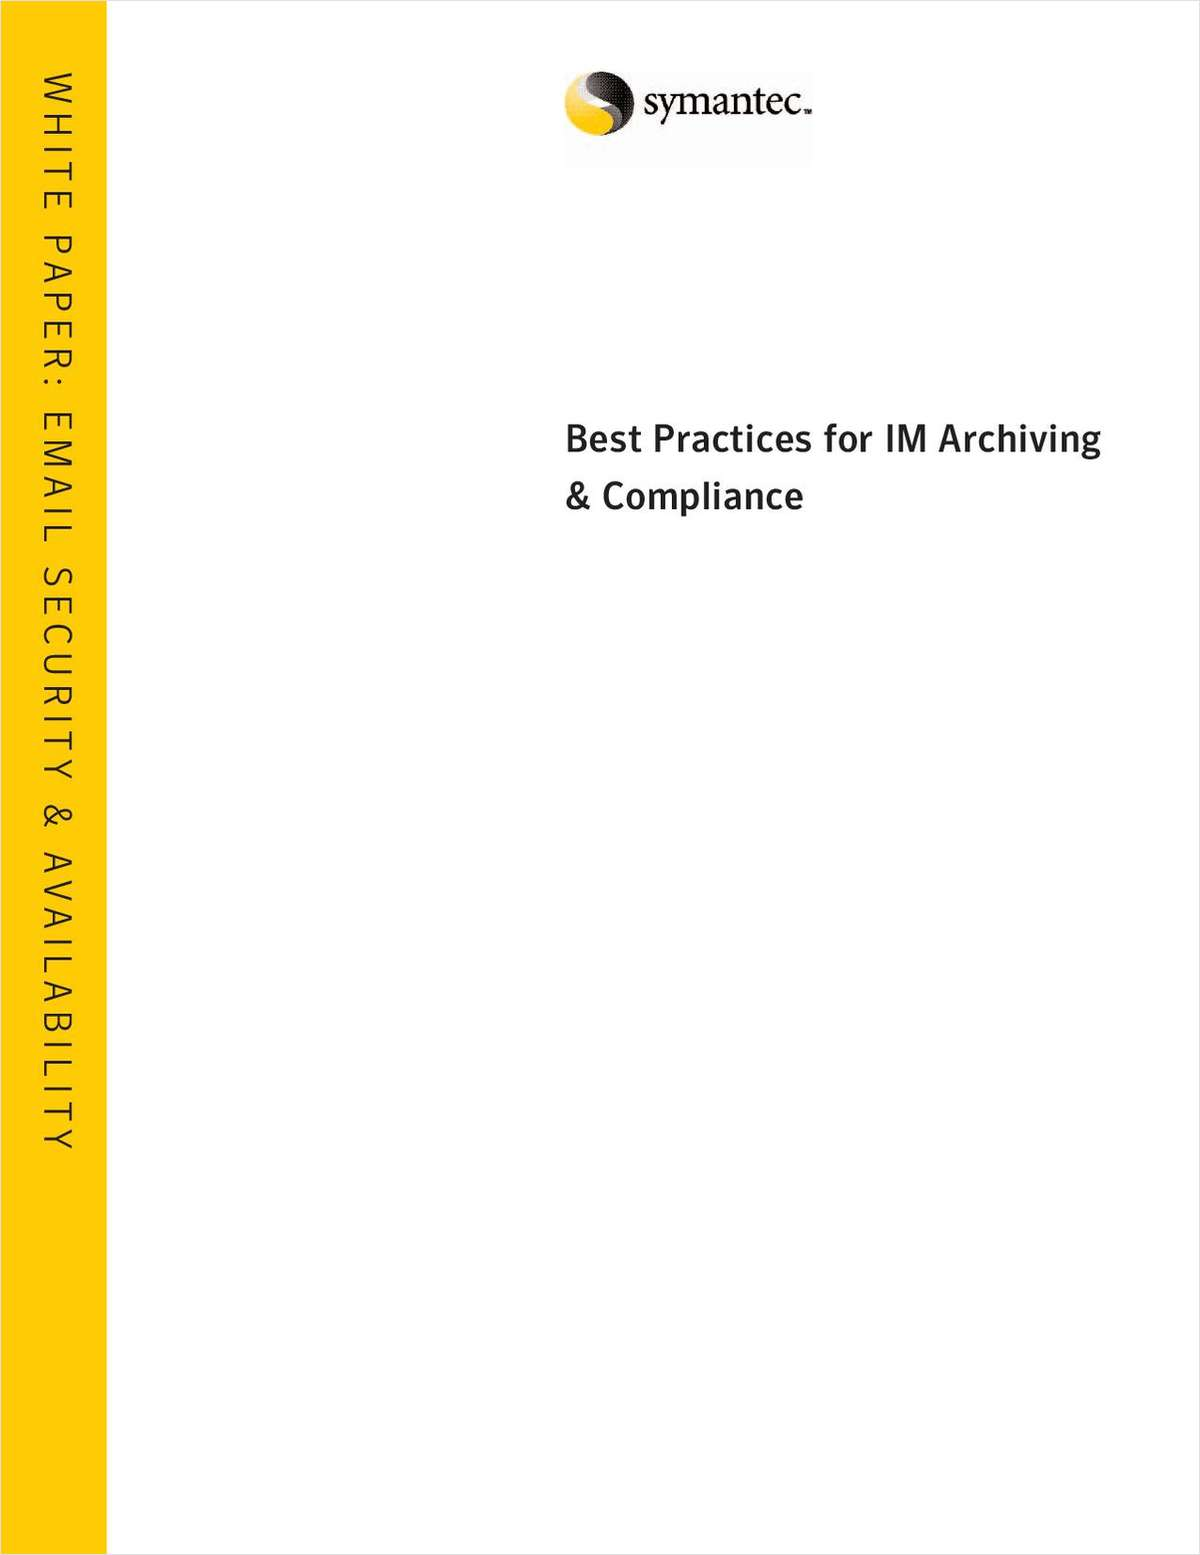 Best Practices for IM Archiving & Compliance